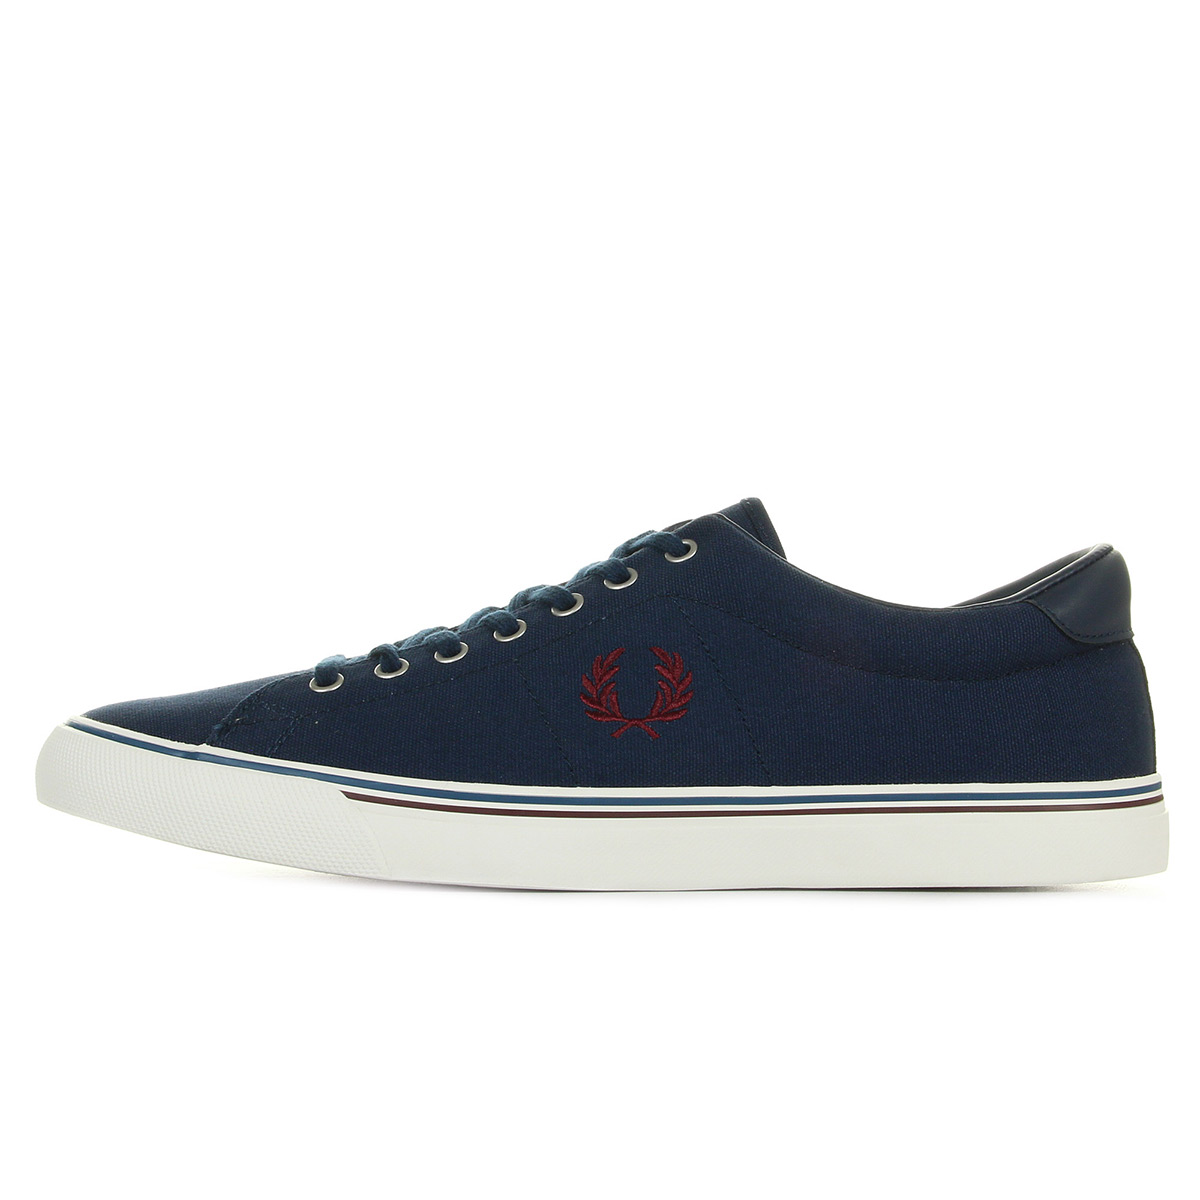 Baskets Fred Perry Underspin Canvas Carbon Blue Yellow Myzk2GV